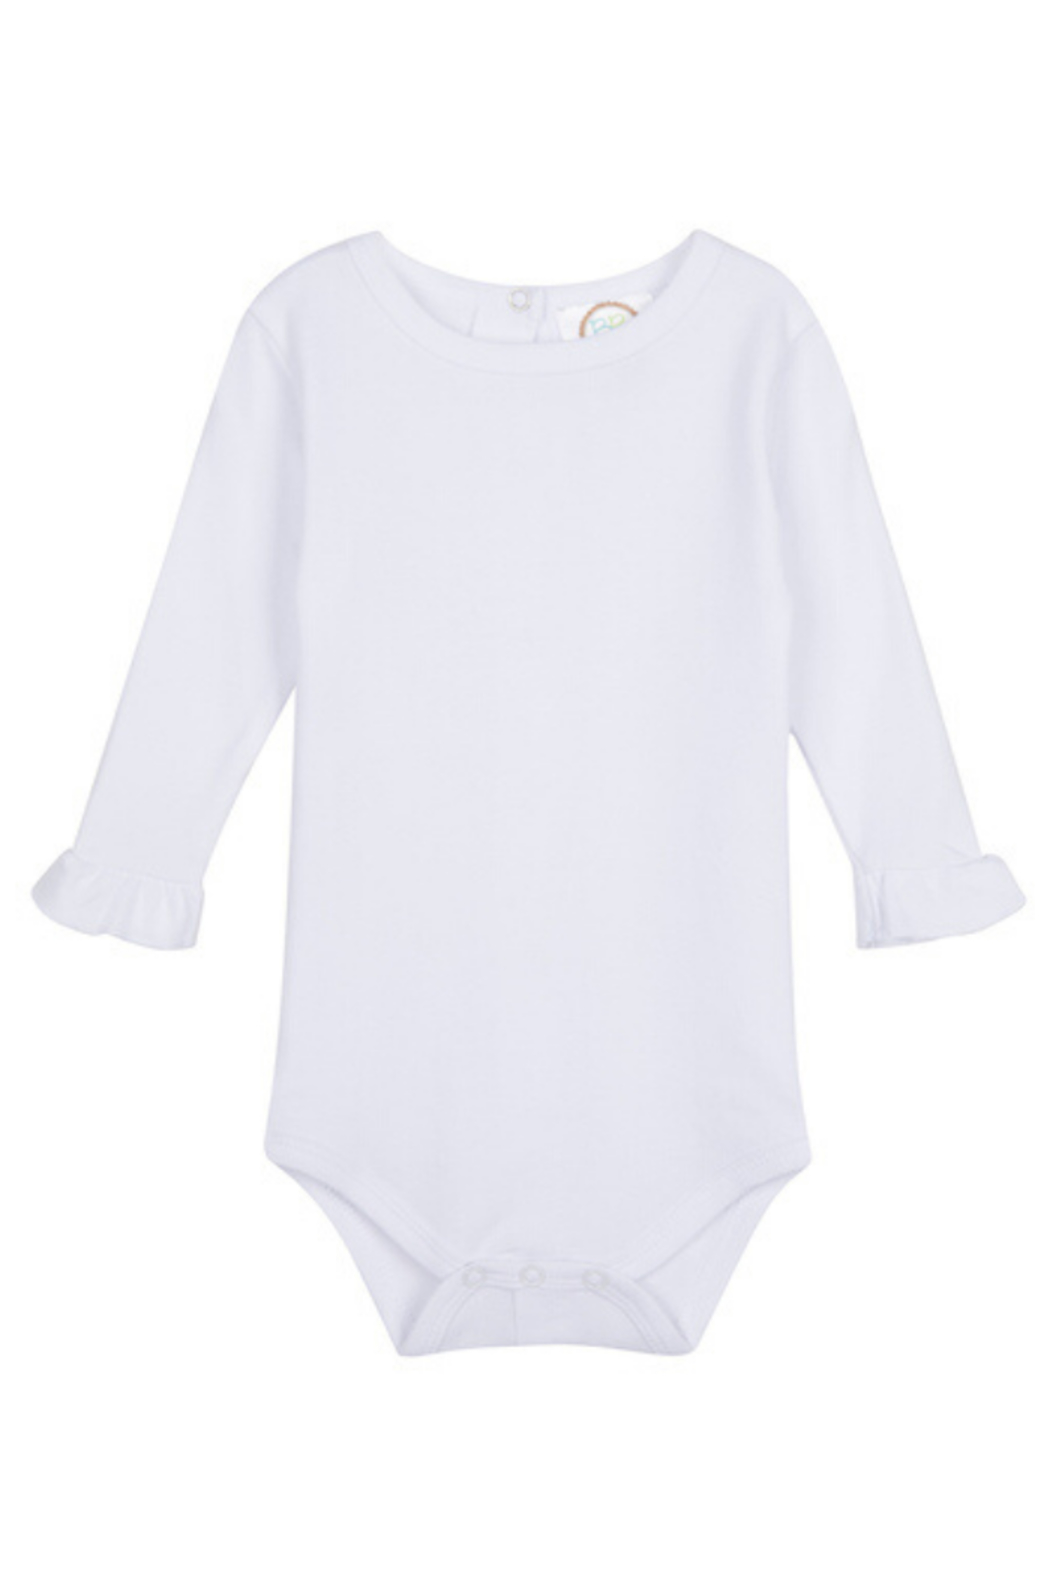 Blanks Boutique LSU Tiger Applique on Long Sleeve Ruffle Onesie - Front Full Image